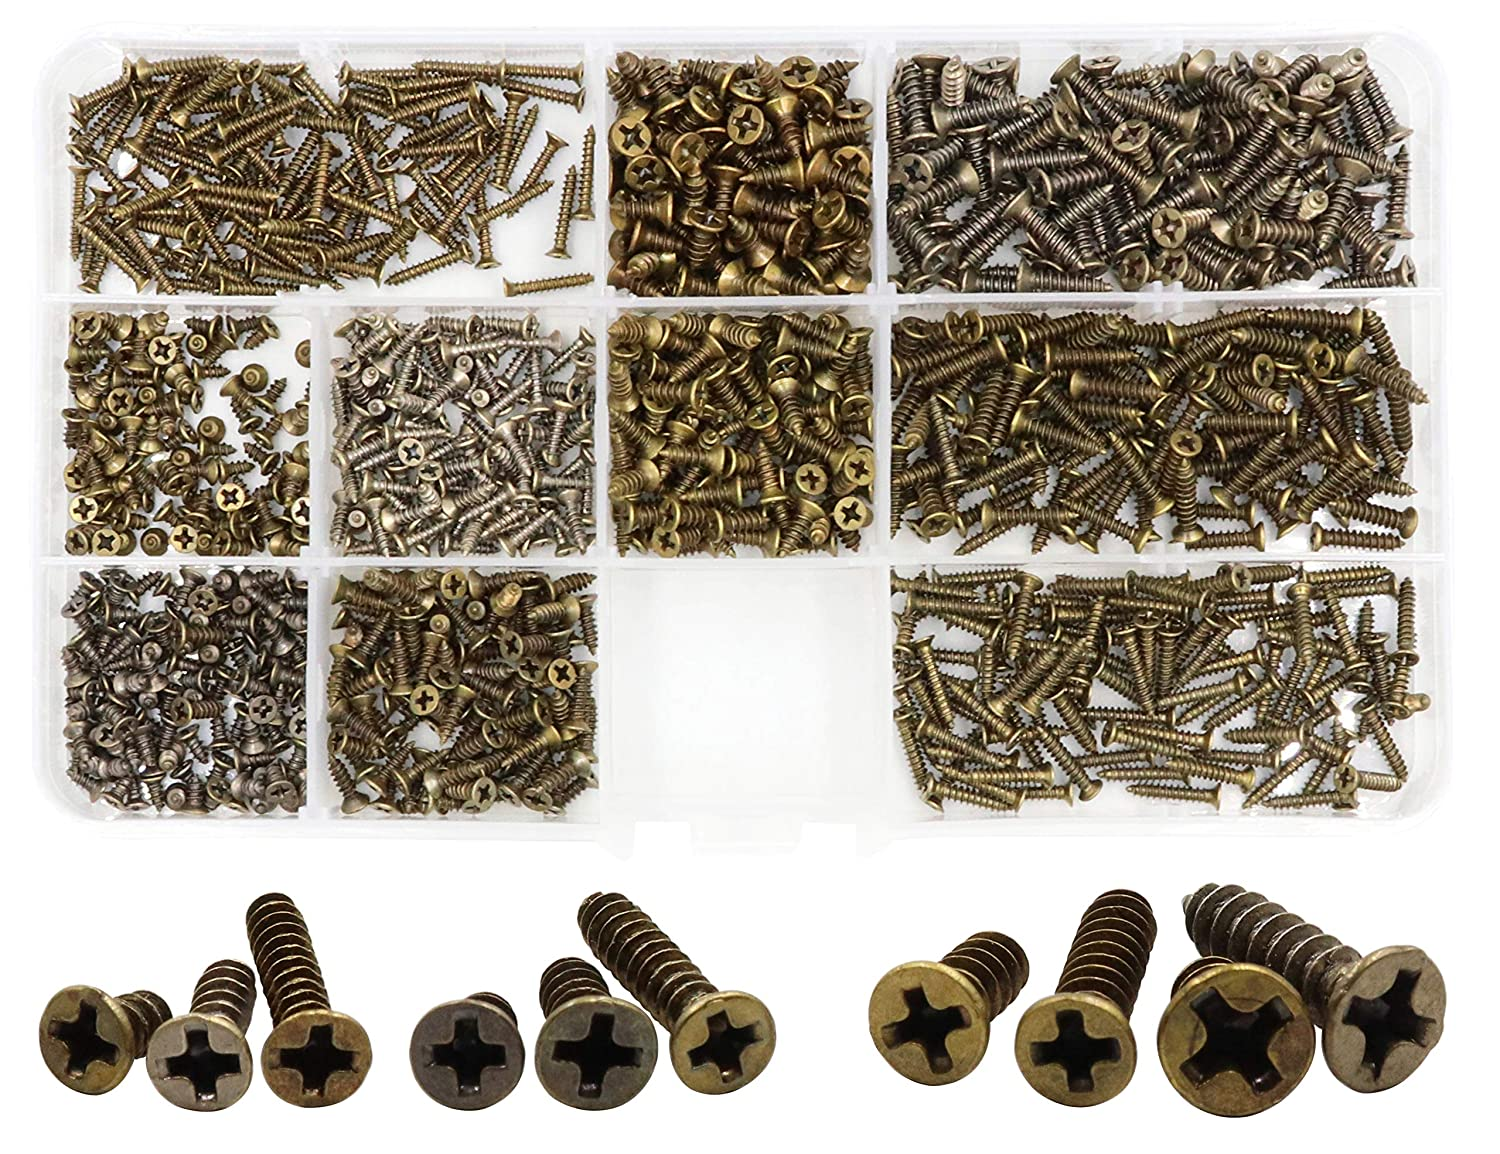 LBY 1000pcs M2 M2.3 M2.6 M3 Philips Flat Head Self-Tapping Sheetmetal Screw Assortment Kit Mini Wood Screws 10 Sizes Combination Carbon Steel Bronze-Coloured